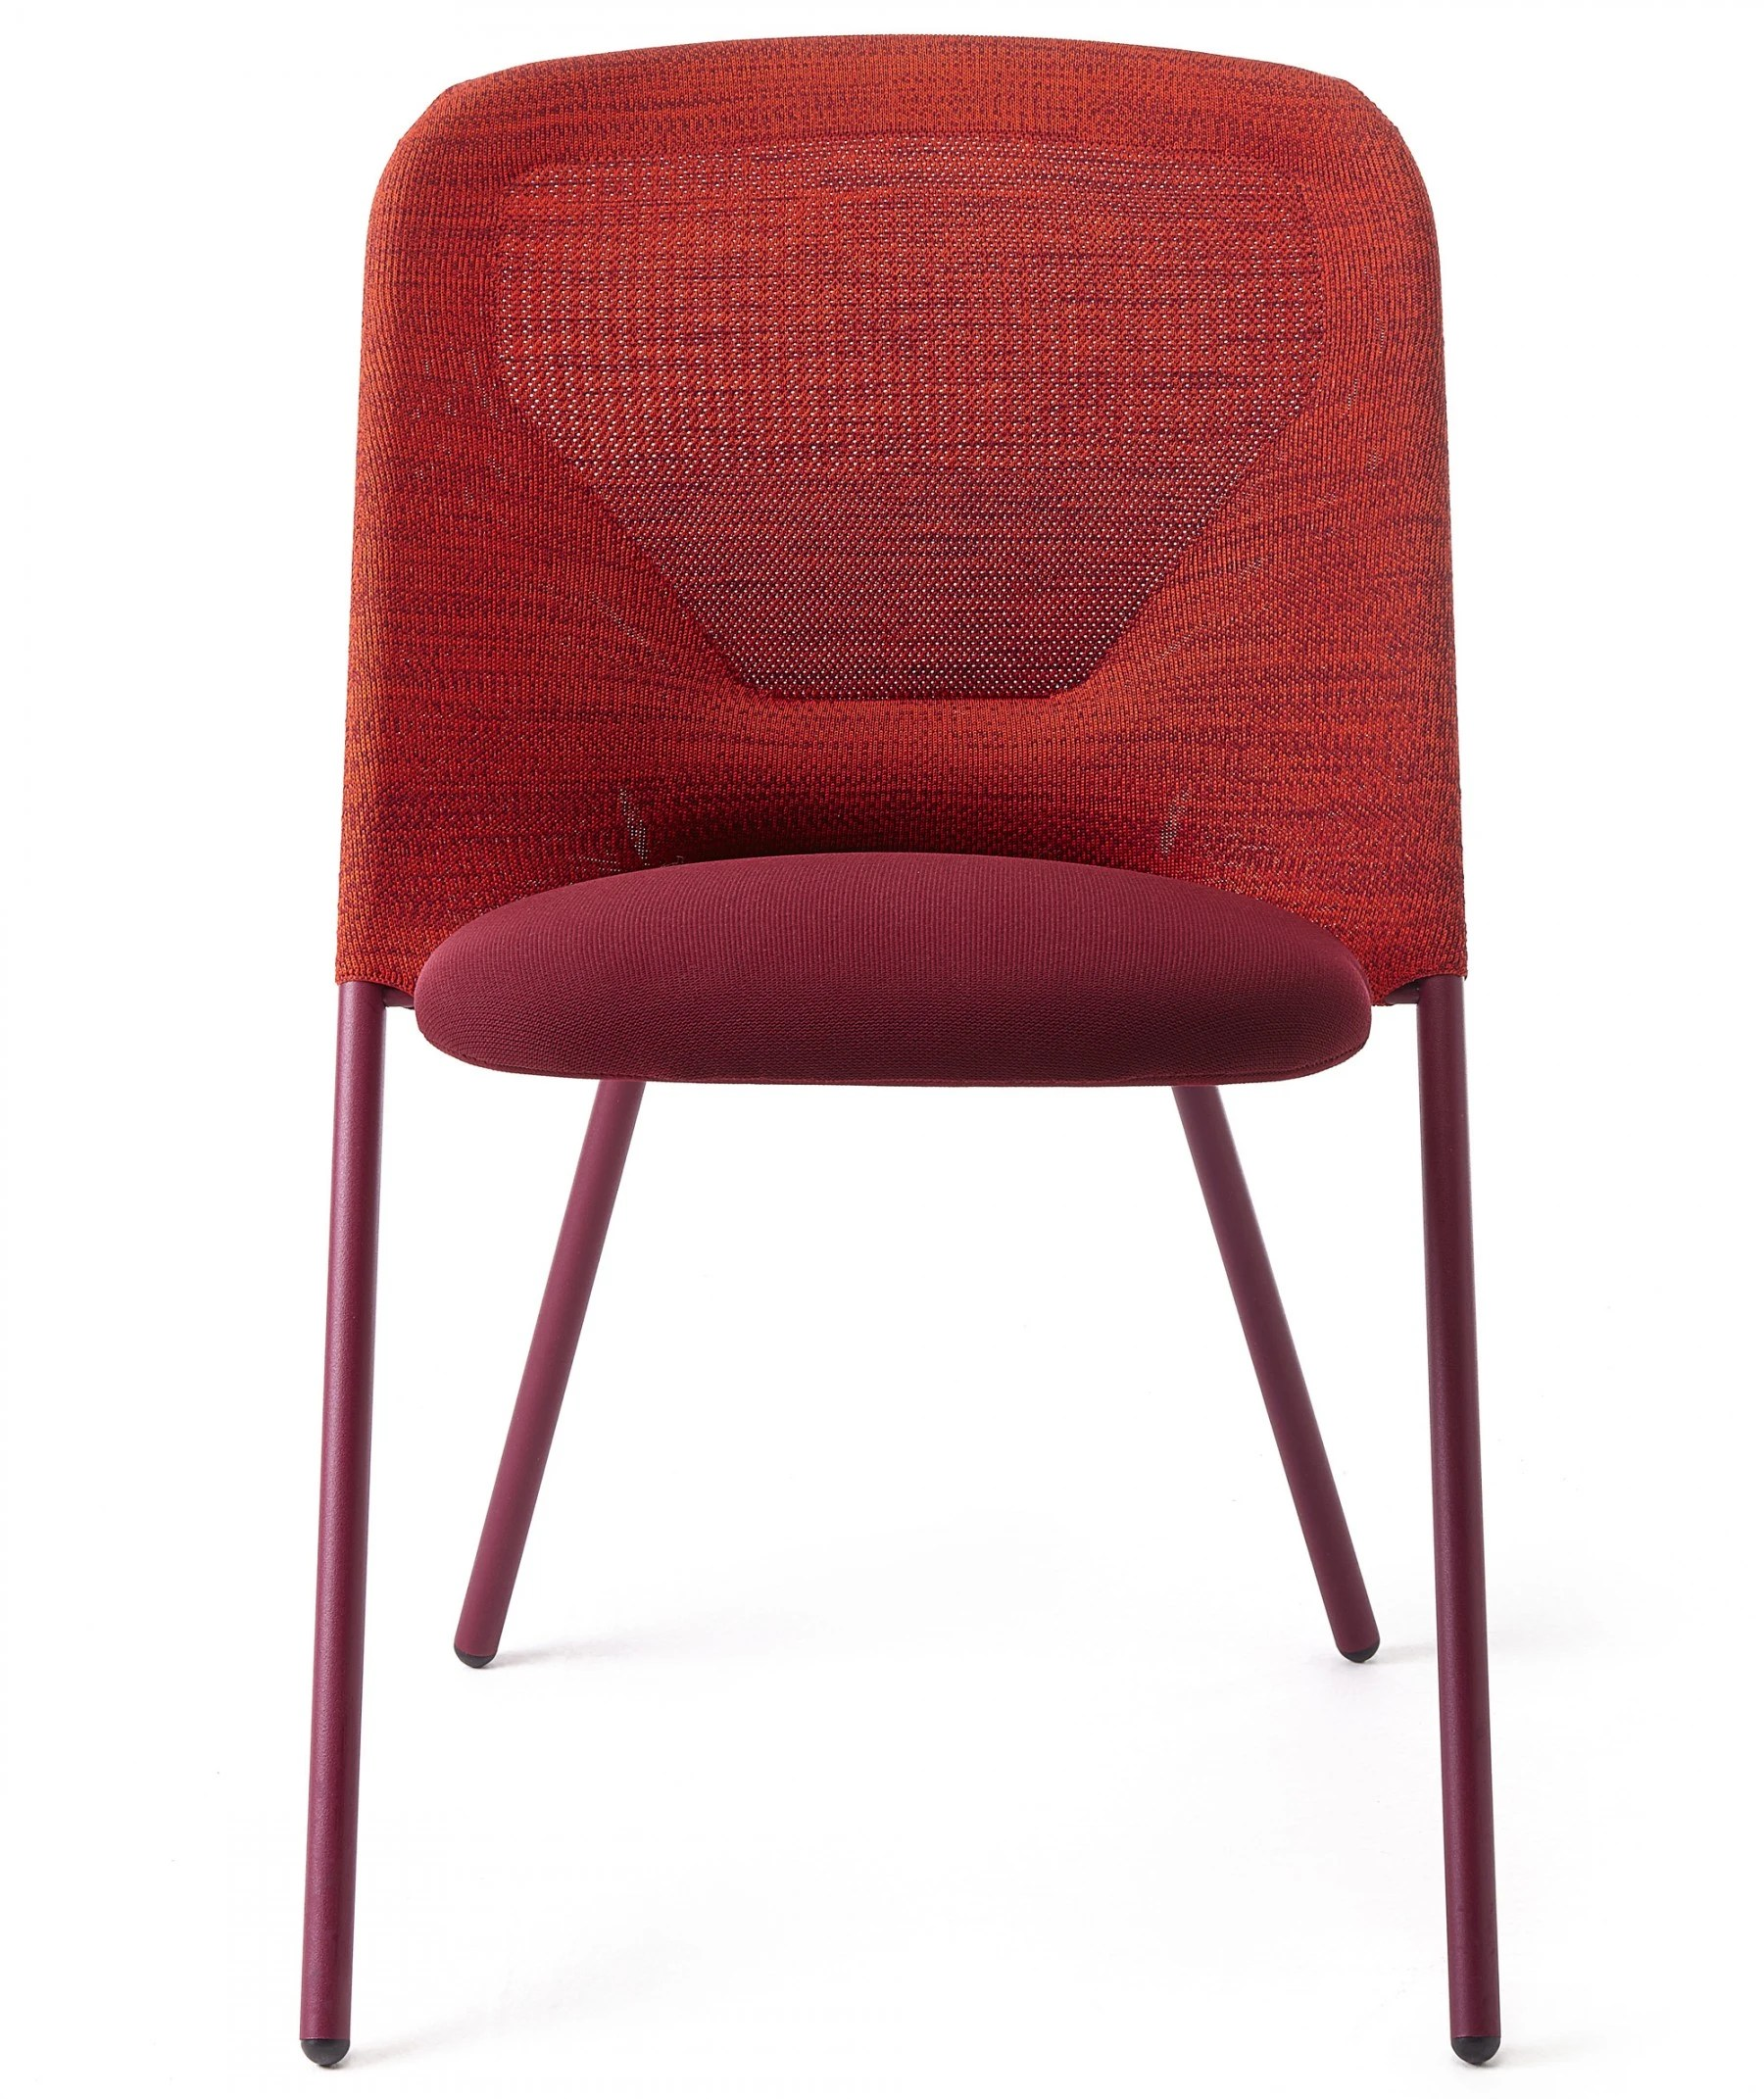 Foldable Dining Chairs Moooi Shift Foldable Dining Chair